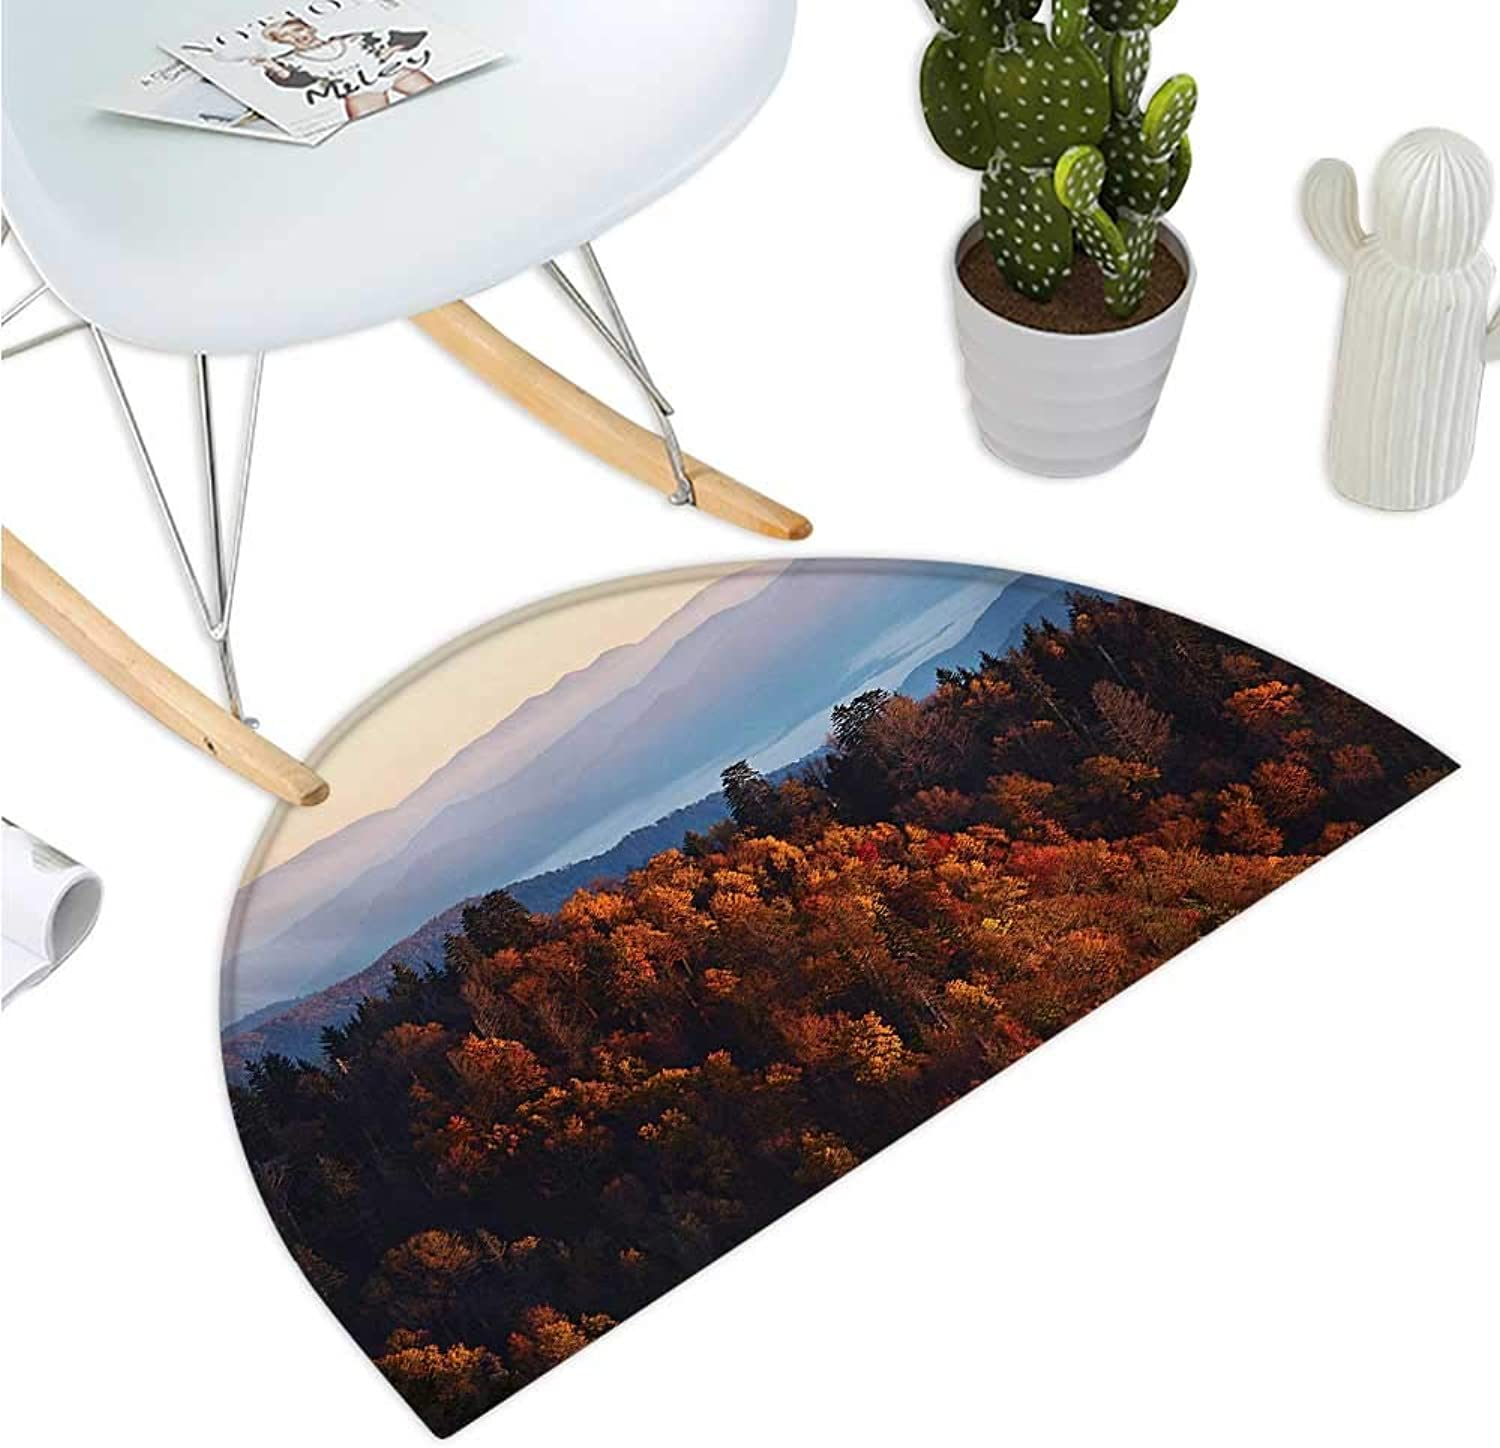 National Parks Semicircle Doormat Sunrise at The Mountains Pine Trees Covered on Hill Mist South Carolina Entry Door Mat H 35.4  xD 53.1  Multicolor